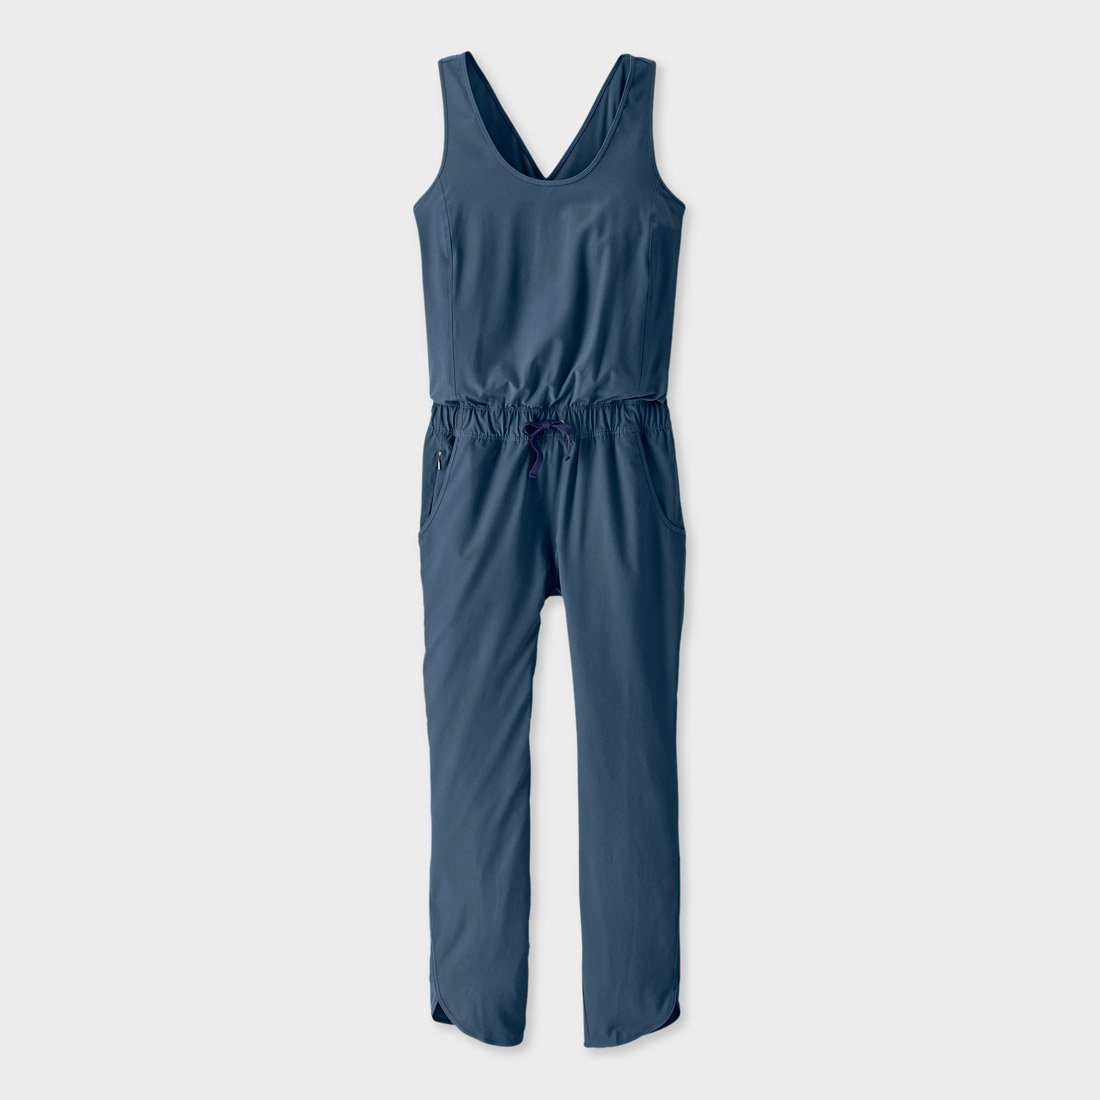 Patagonia Women's Fleetwith Romper Stone Blue